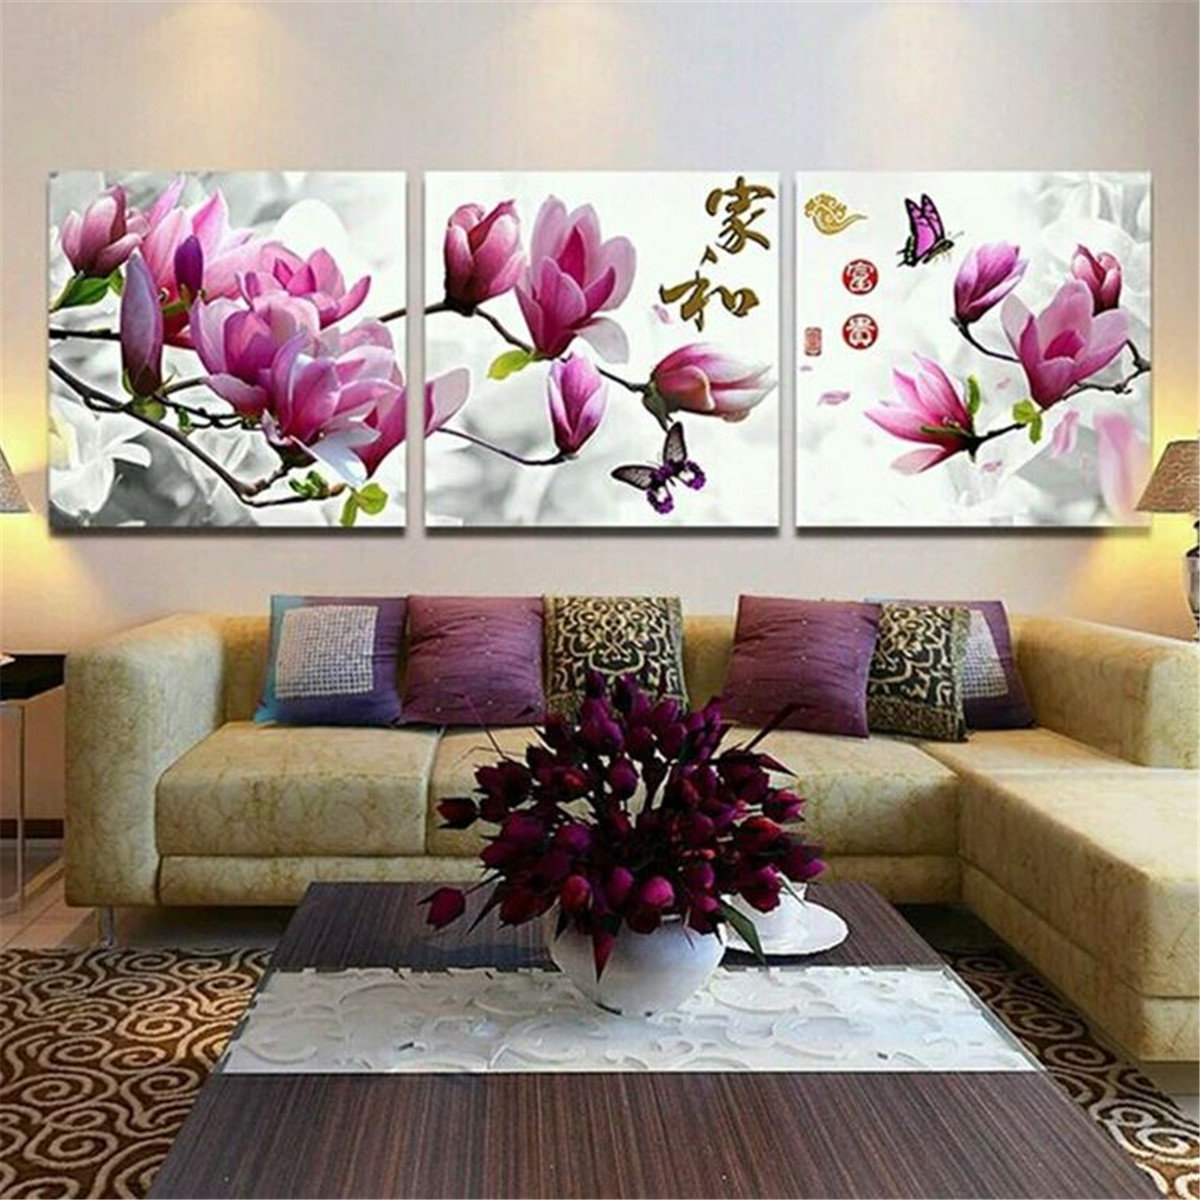 3Pcs Framed Flower Abstract Picture Canvas Print Paintings Home Wall Art  Decor. 3Pcs Framed Flower Abstract Picture Canvas Print Paintings Home